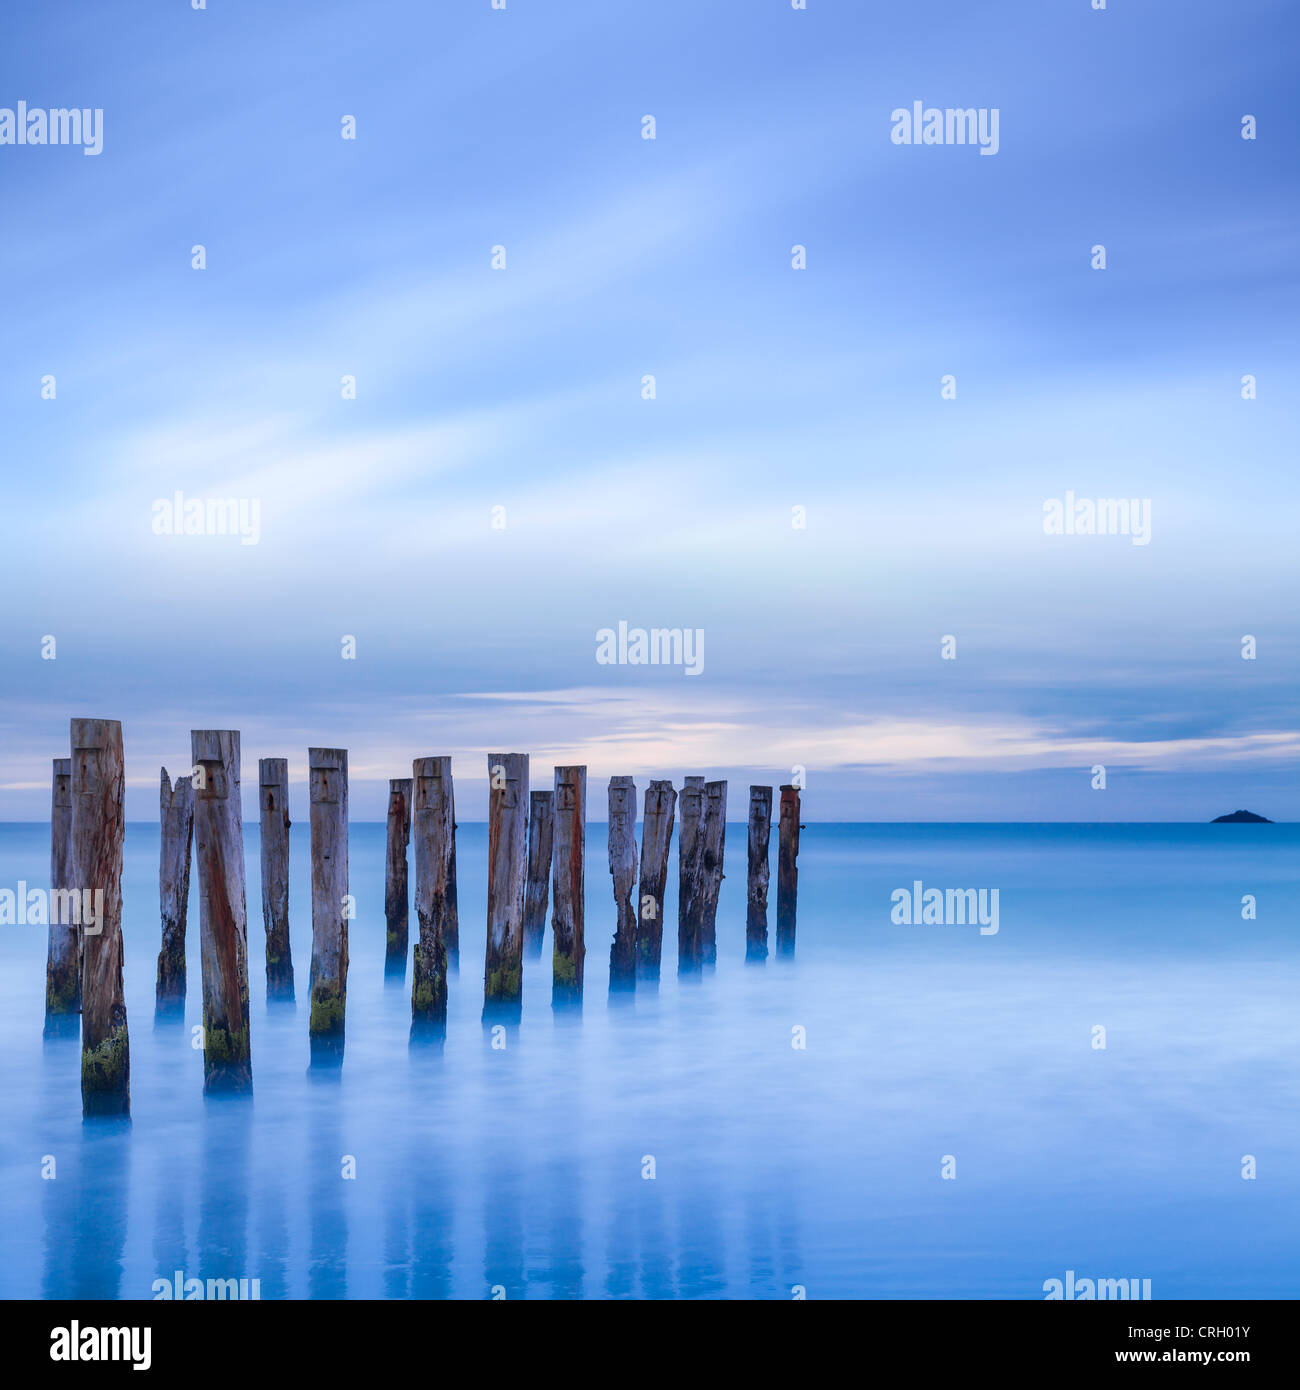 The remains of an old jetty on the beach near Dunedin, New Zealand, just before dawn, square. - Stock Image